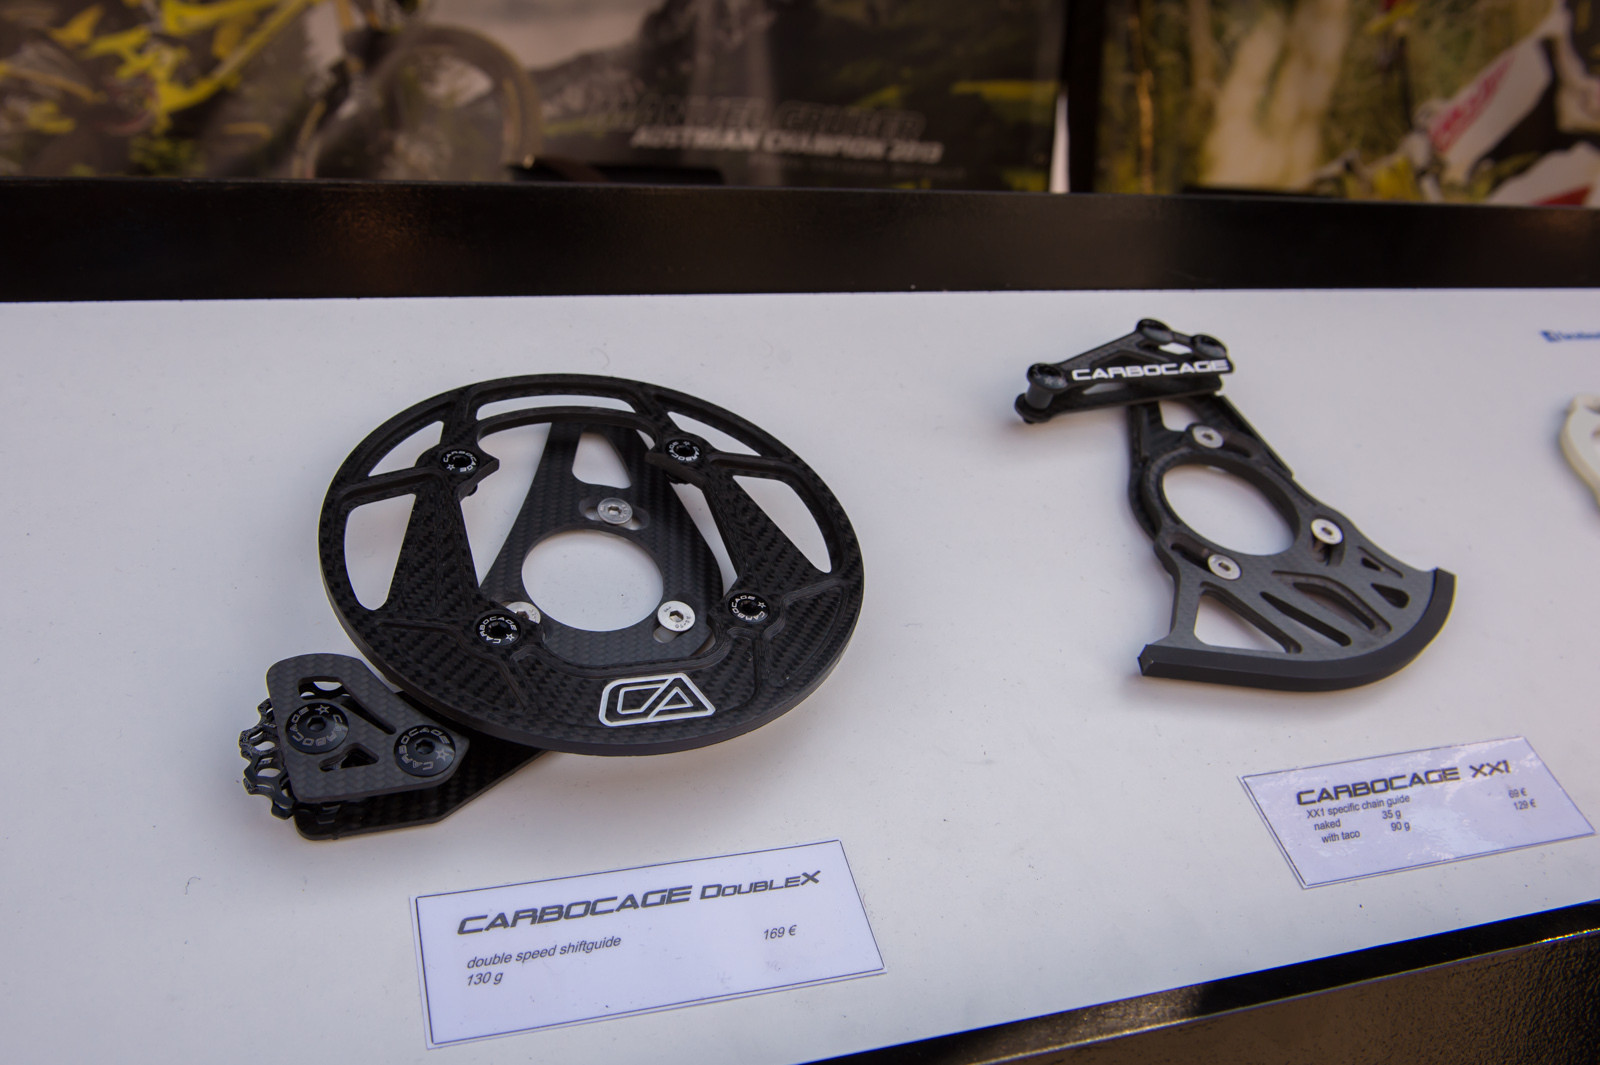 Carbocage Chainguides - 2014 Mountain Bike Components at Eurobike 2013 - Mountain Biking Pictures - Vital MTB